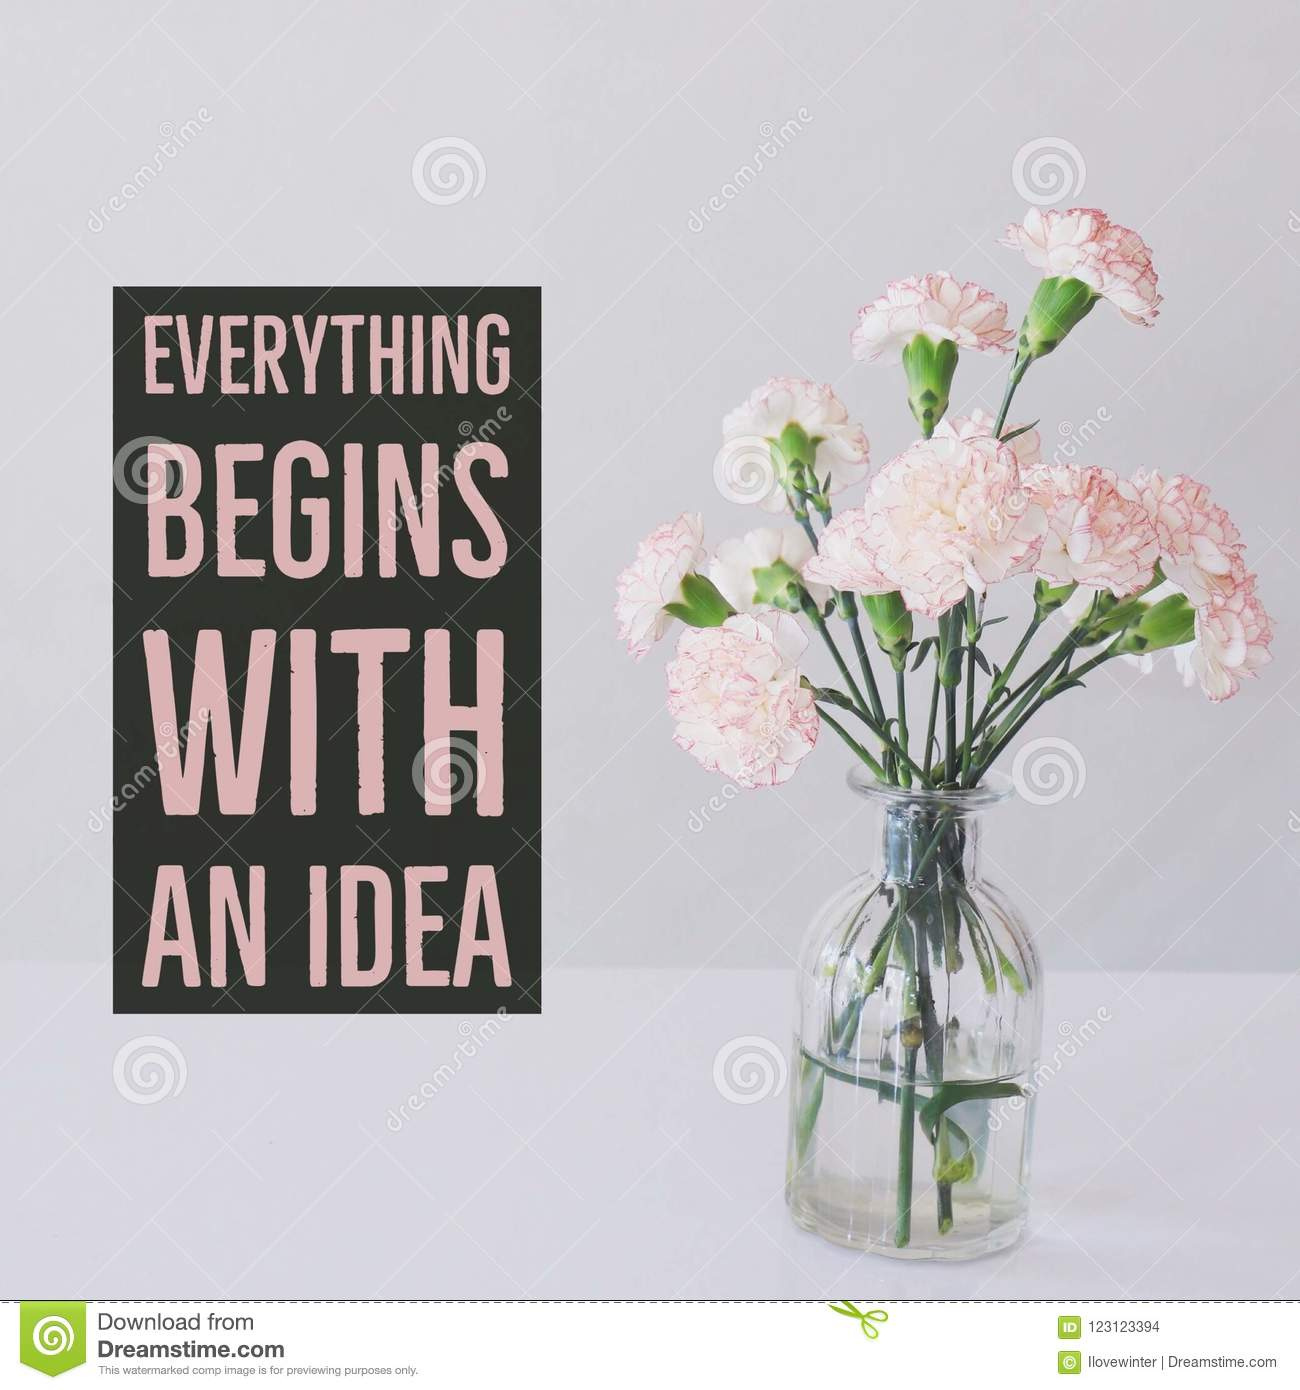 Inspirational motivational quote `Everything begins with an idea.`